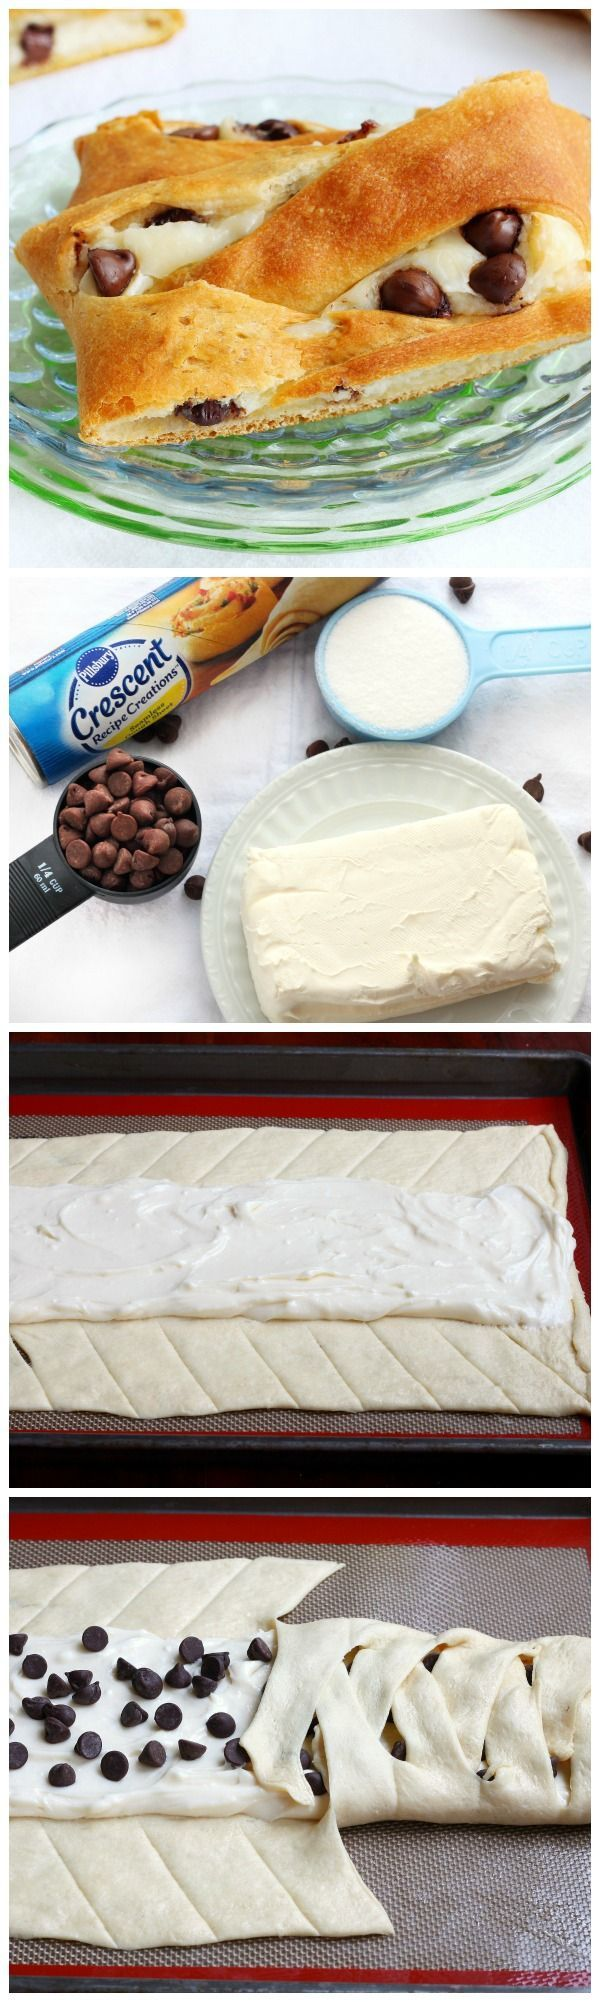 Ditch The Bakery DIY Chocolate Chip Danish ~ Perfectly flaky and fluffy dough combined with a filling of sweet cream cheese and chocolatey oozing.